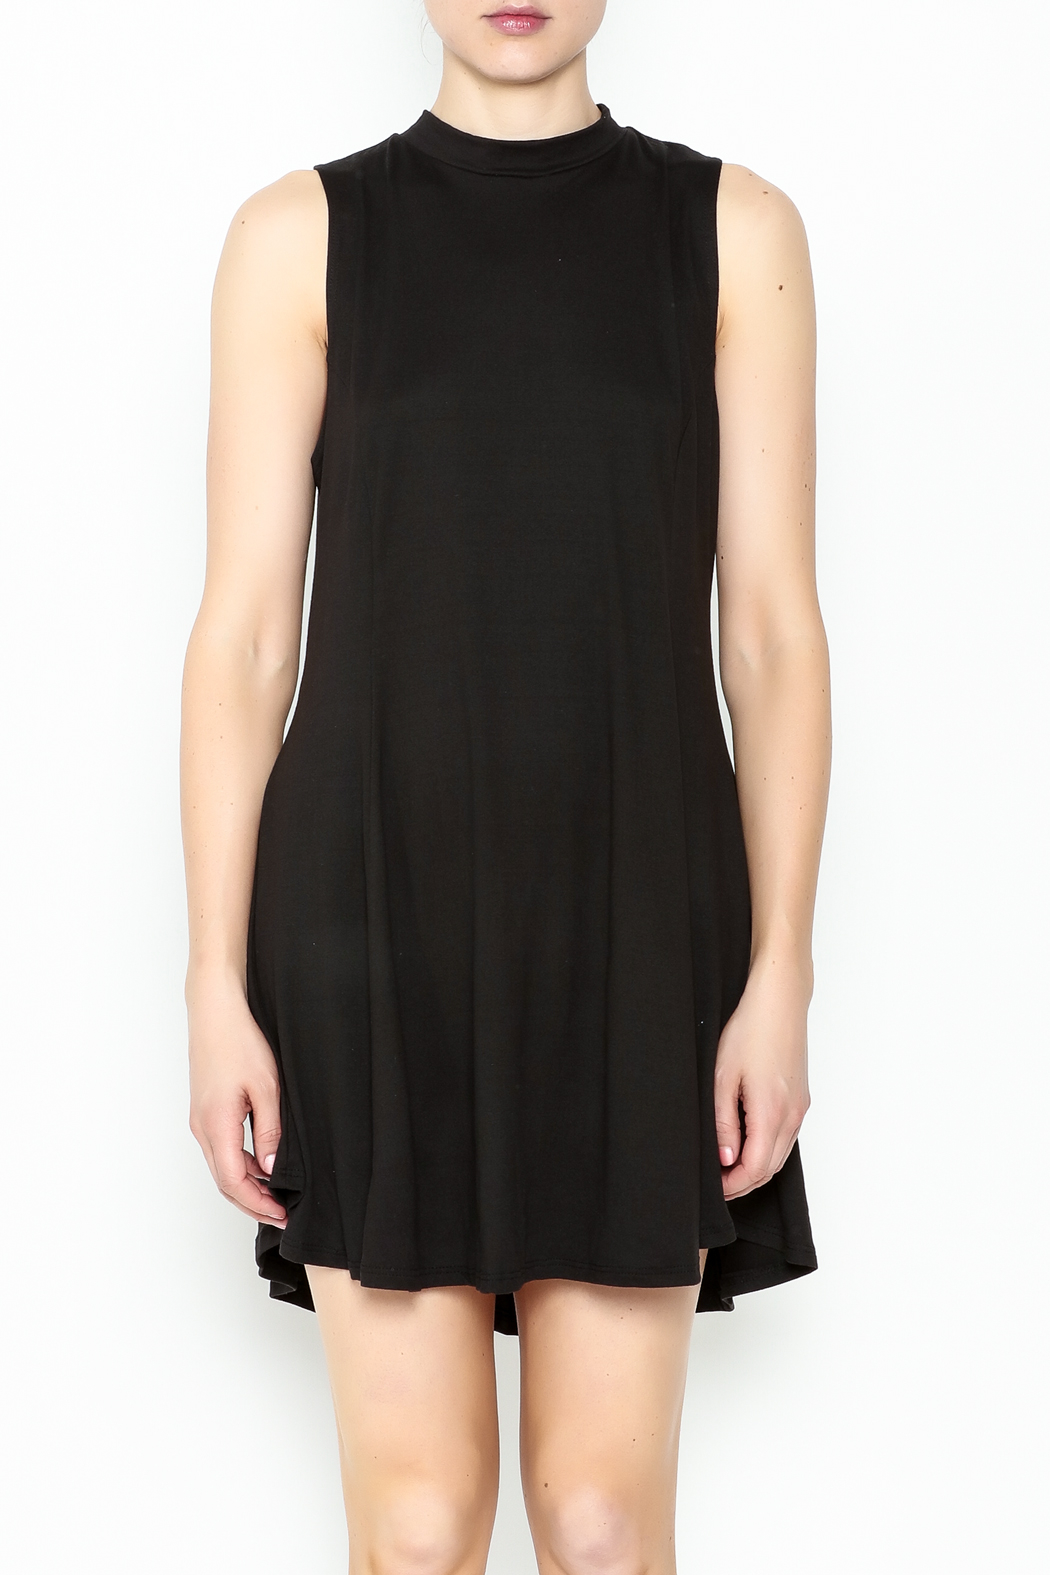 jella c Open Back Skater Dress - Front Full Image